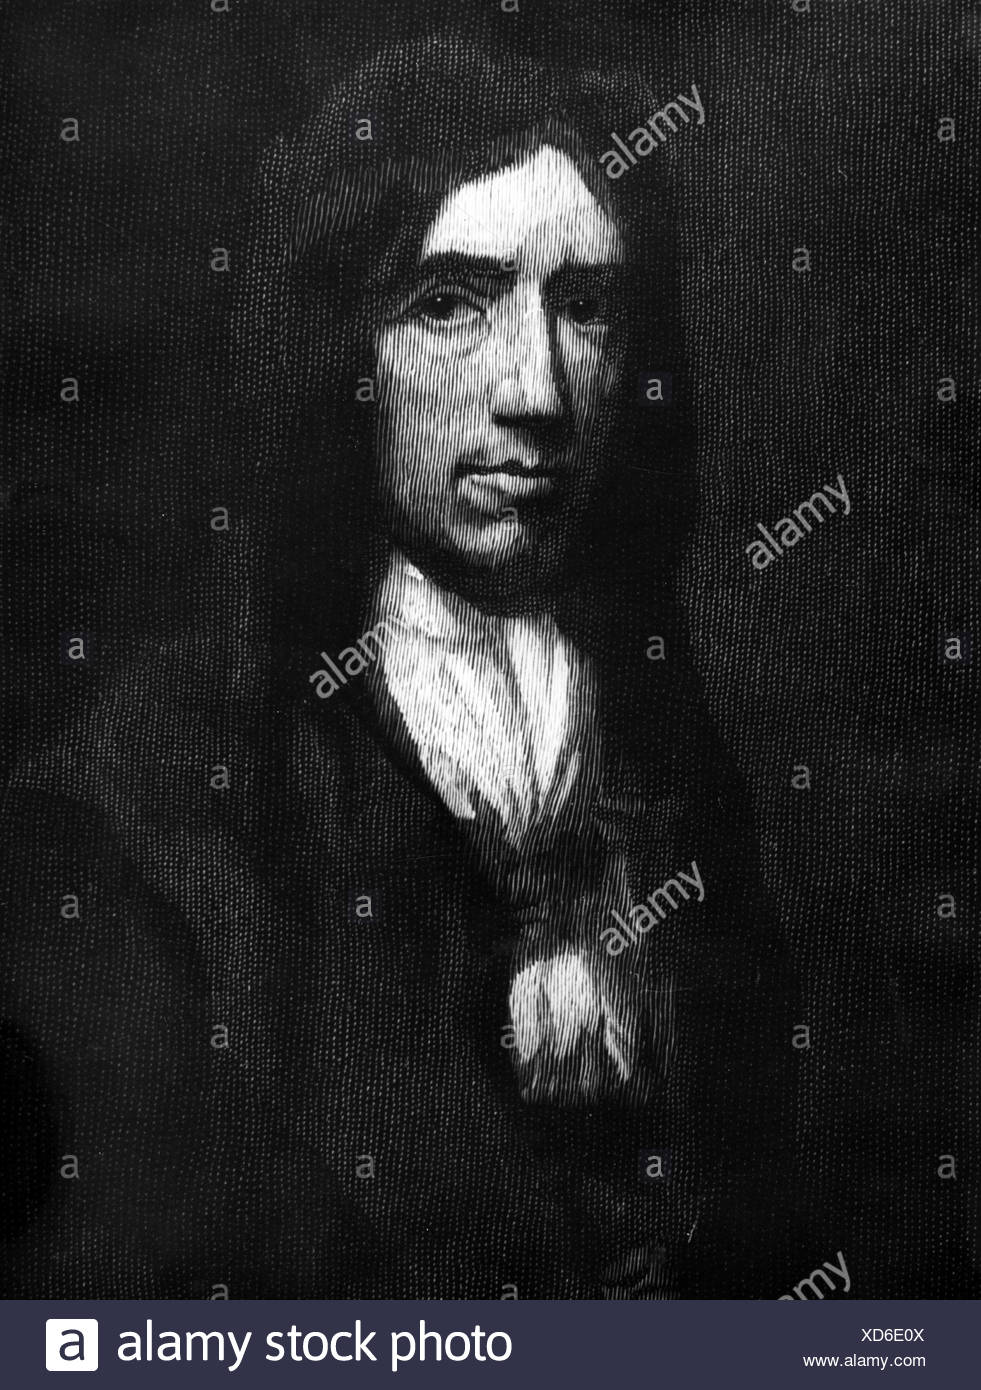 Dampier, William, 1651 - 1715, English sea captain, explorer, engraving, contemporaneous portrait, Additional-Rights-Clearances-NA - Stock Image